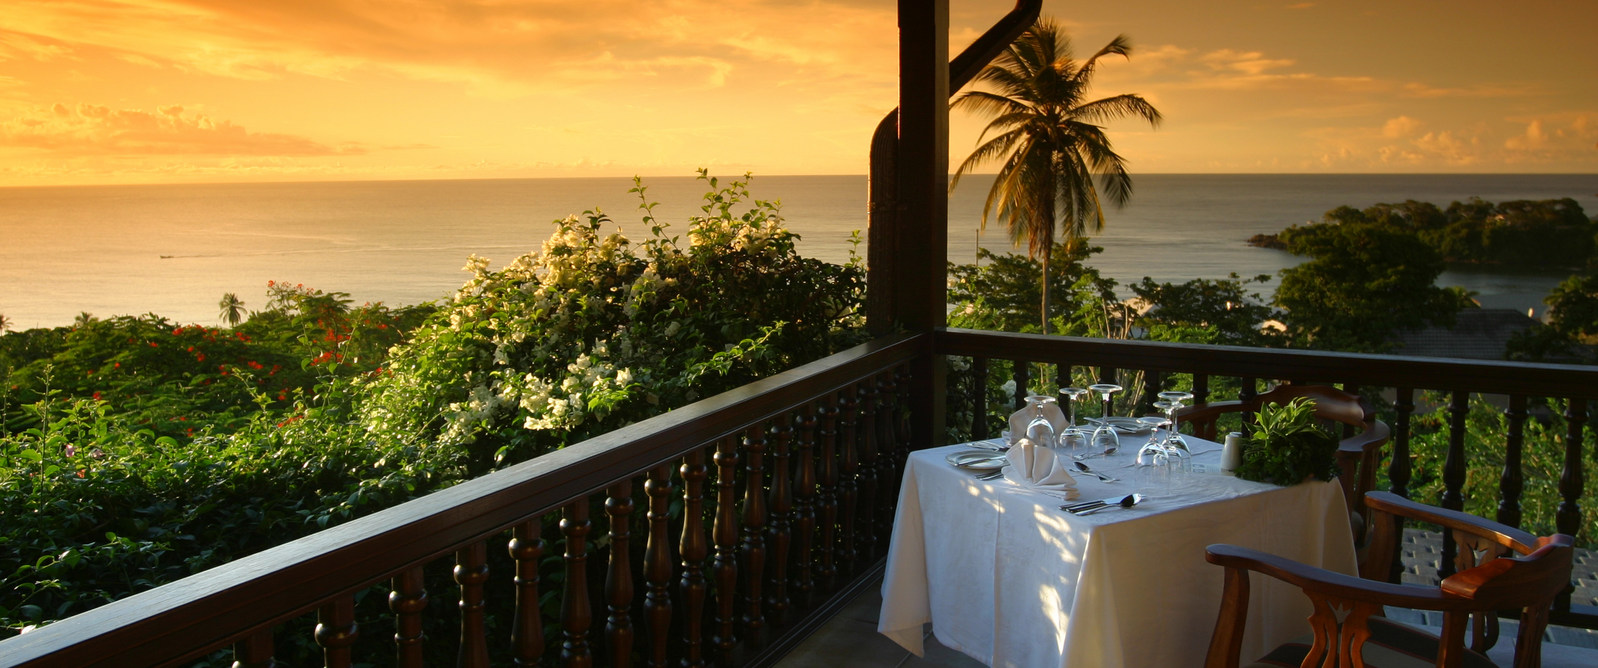 Sunset at the Pavilion Restaurant. Courtesy the Villas at Stonehaven